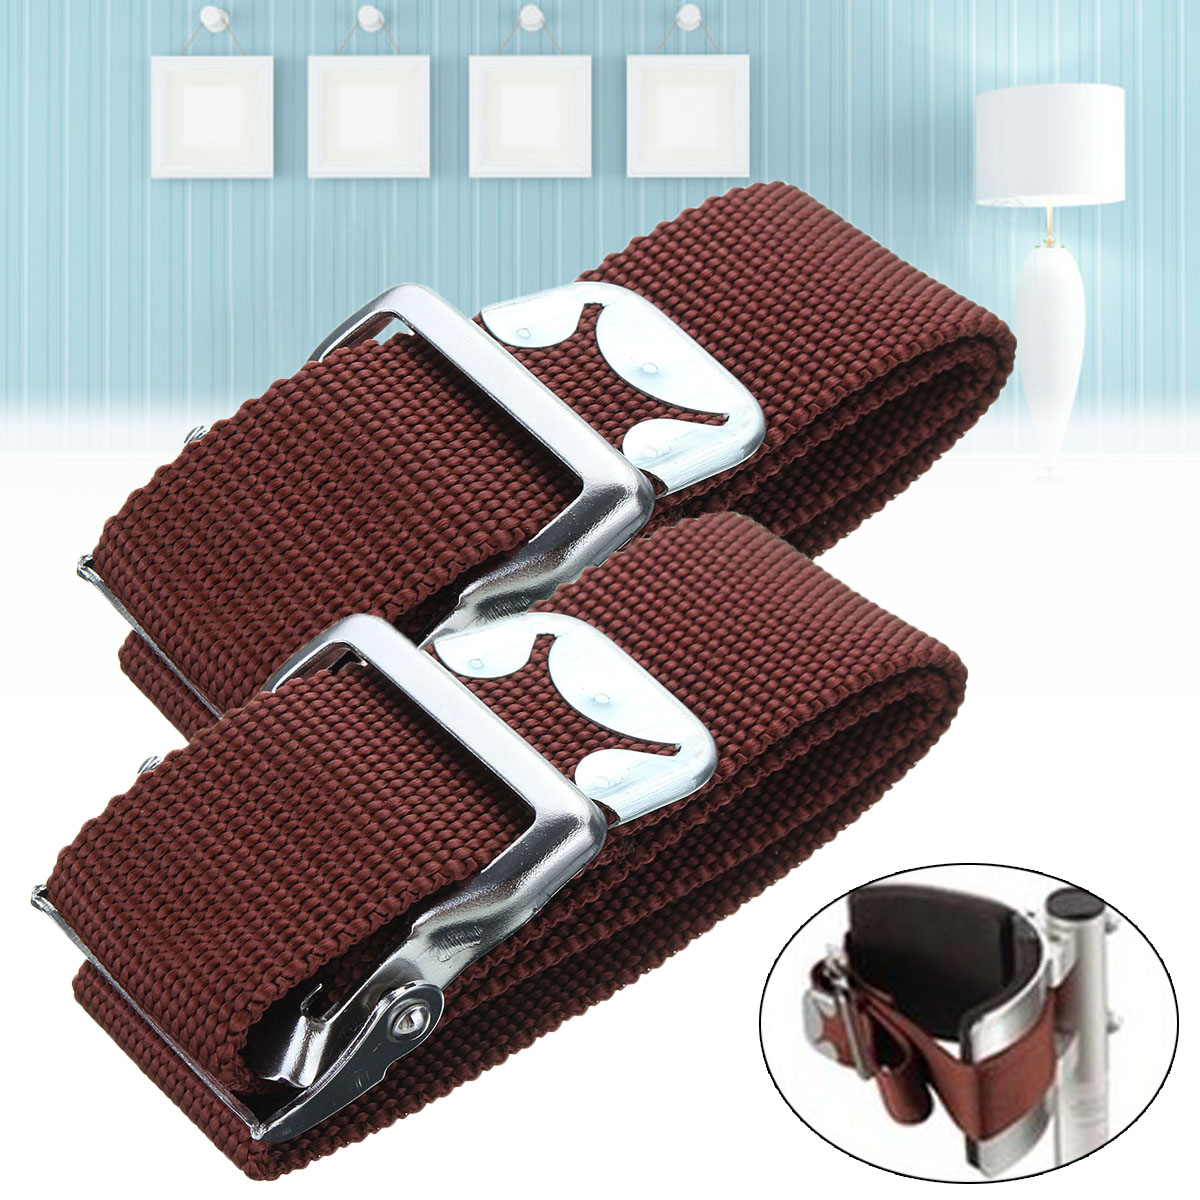 2Pcs Dura-Stilt Foot Arch and Toe Strap Kit Replacement for Drywall Painting